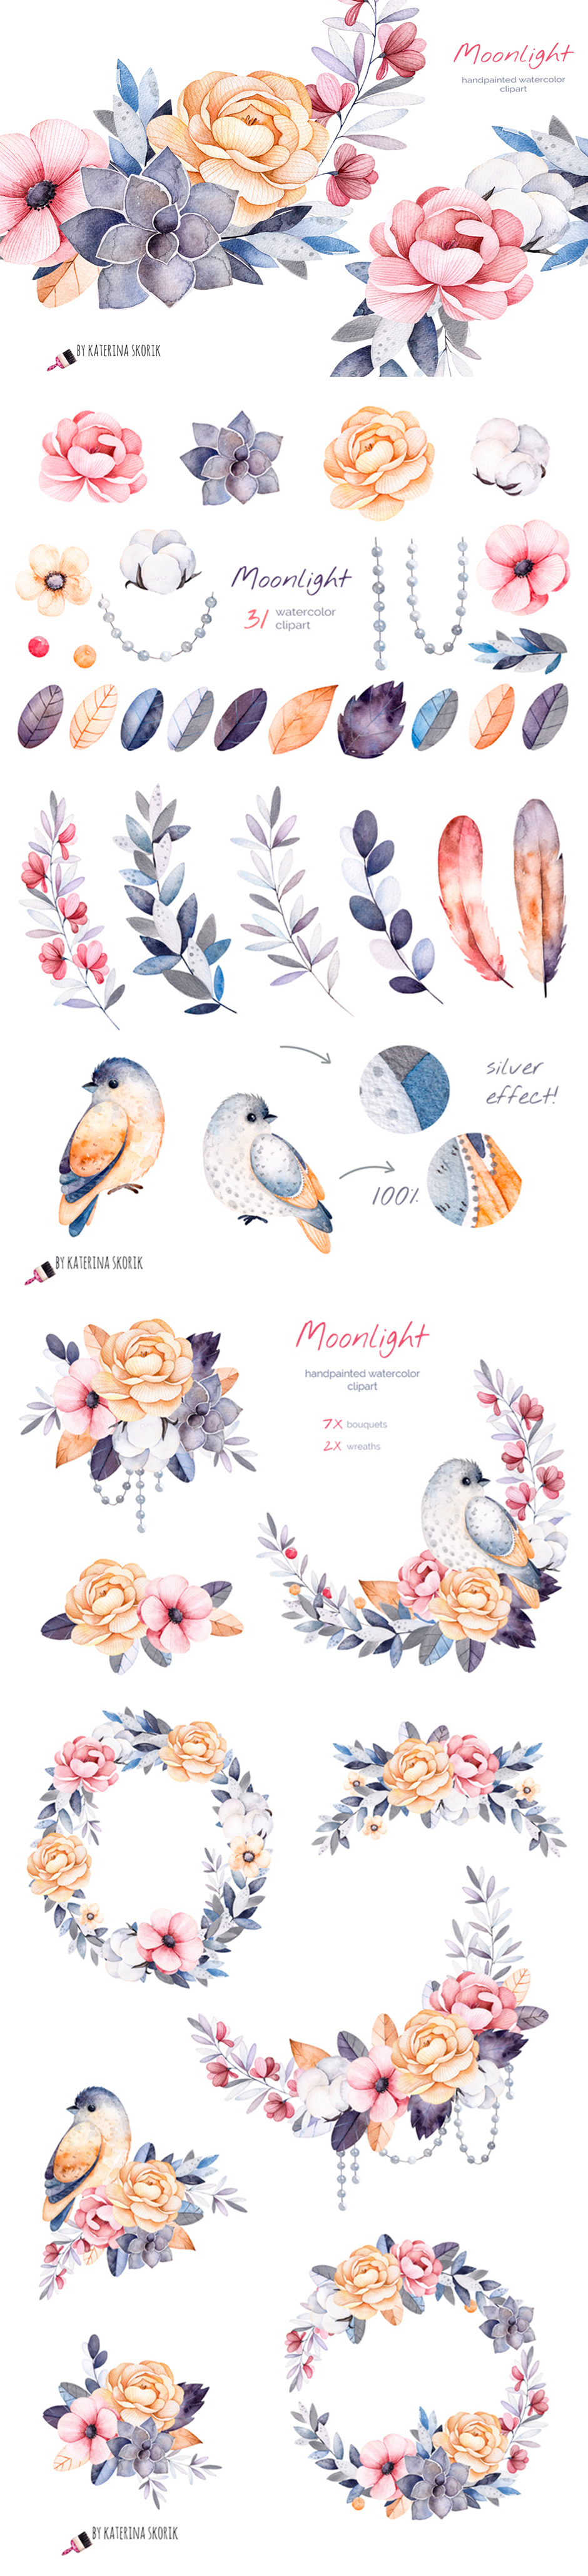 Moonlight: Handpainted Watercolor Collection